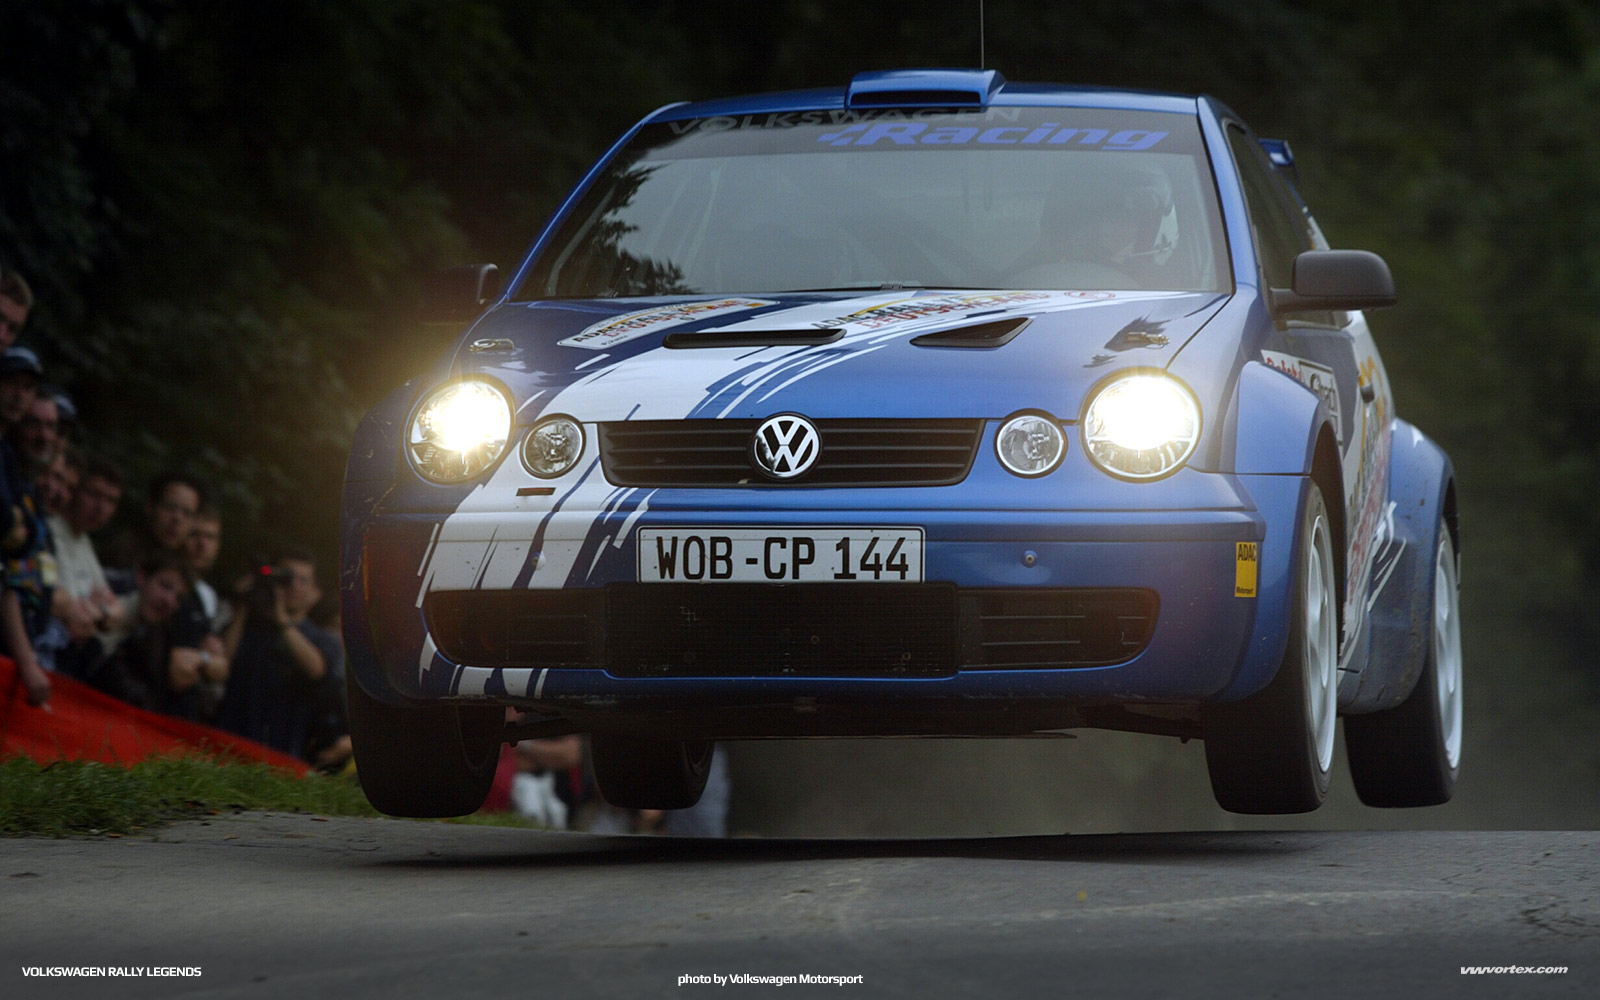 volkswagen-rally-legends-401